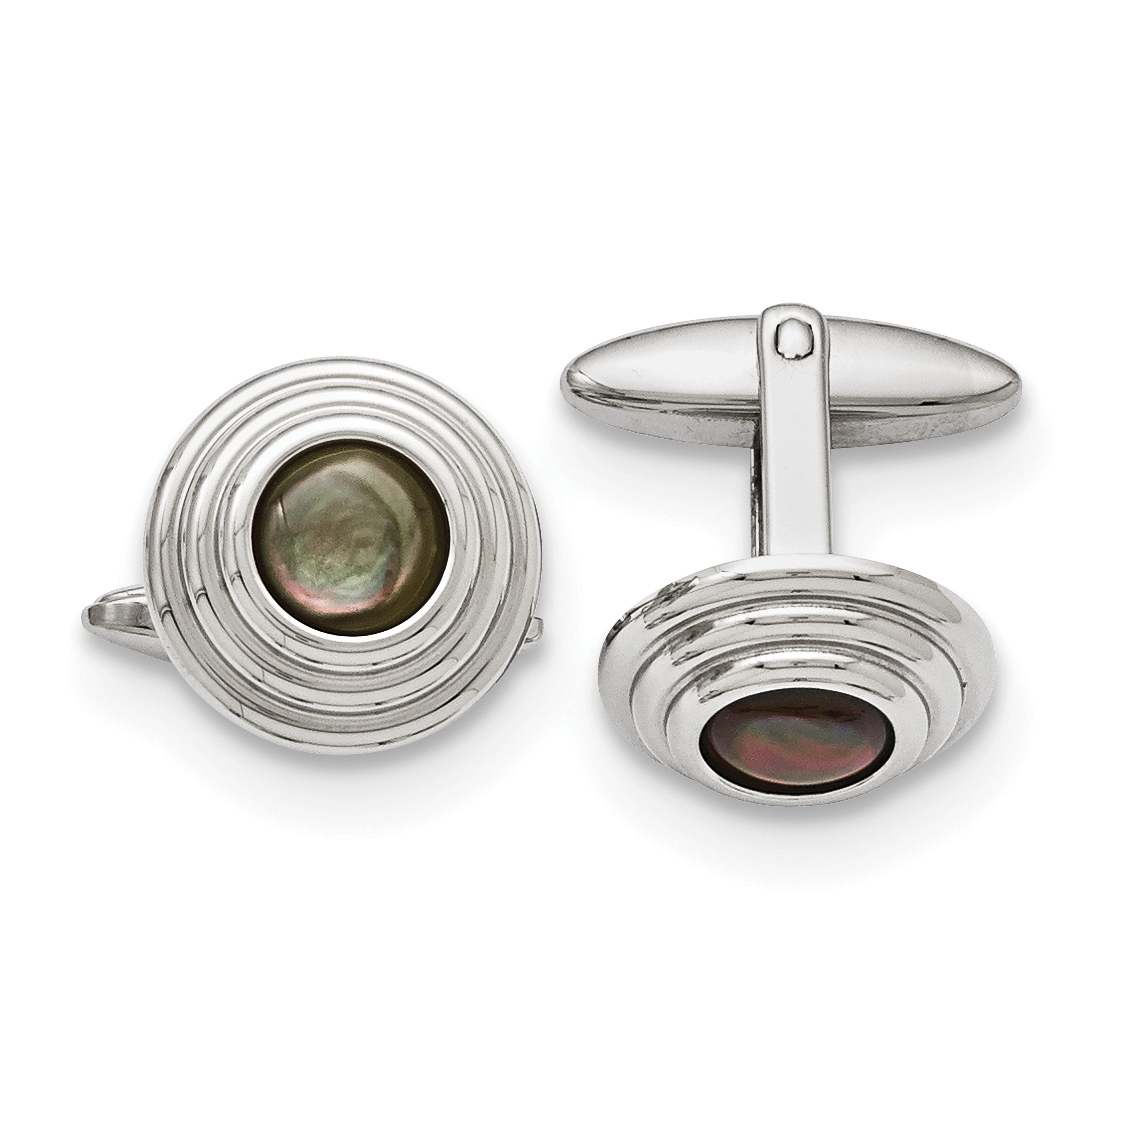 Stainless Steel Polished Black Mother of Pearl Cuff Links - image 3 of 3